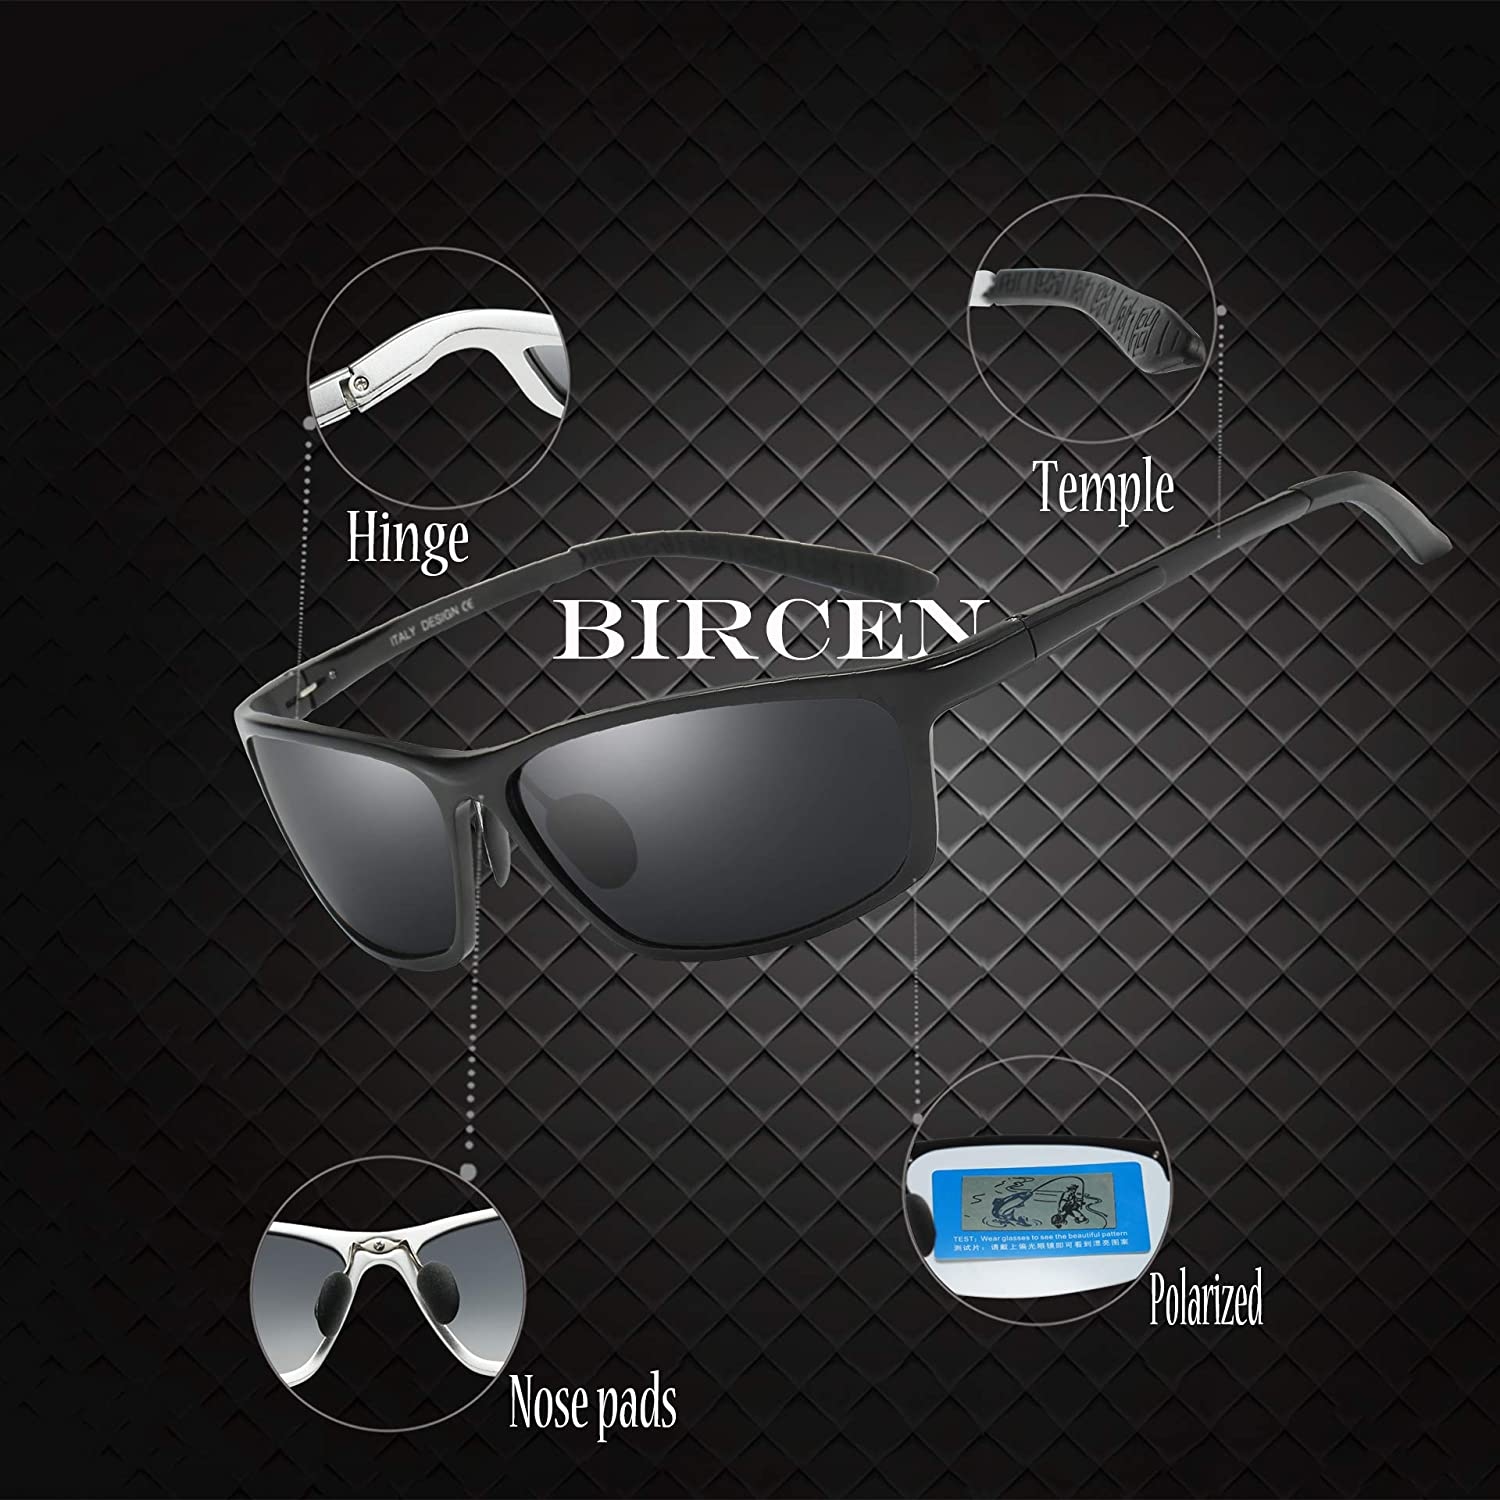 06a8348c495 Amazon.com  HOT Fashion Driving Polarized Sunglasses for Mens Womens Sports  Design Anti Glare Glasses for Outdoor Sunglasses by Bircen  Clothing